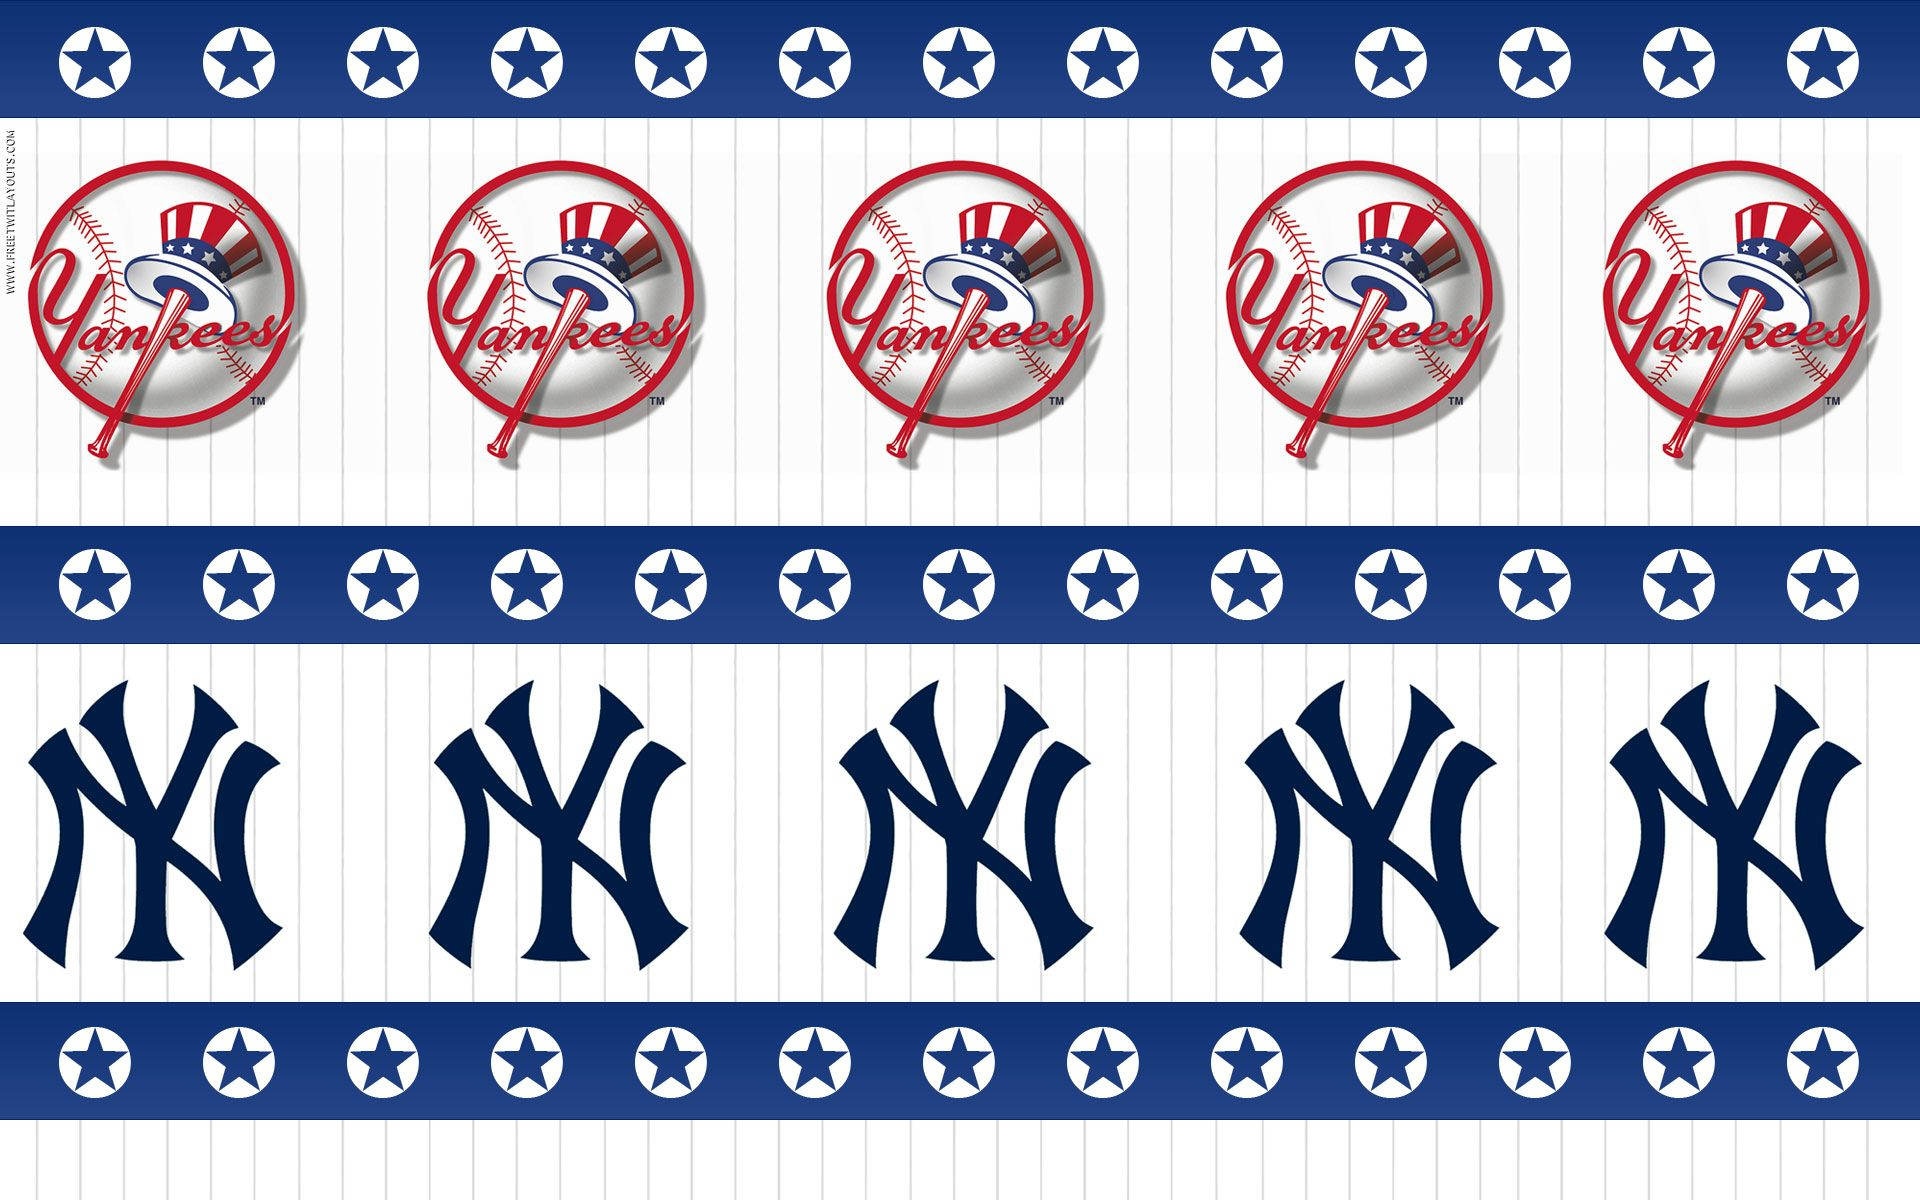 new york yankees wallpapers hd page 3 of 3 wallpaper